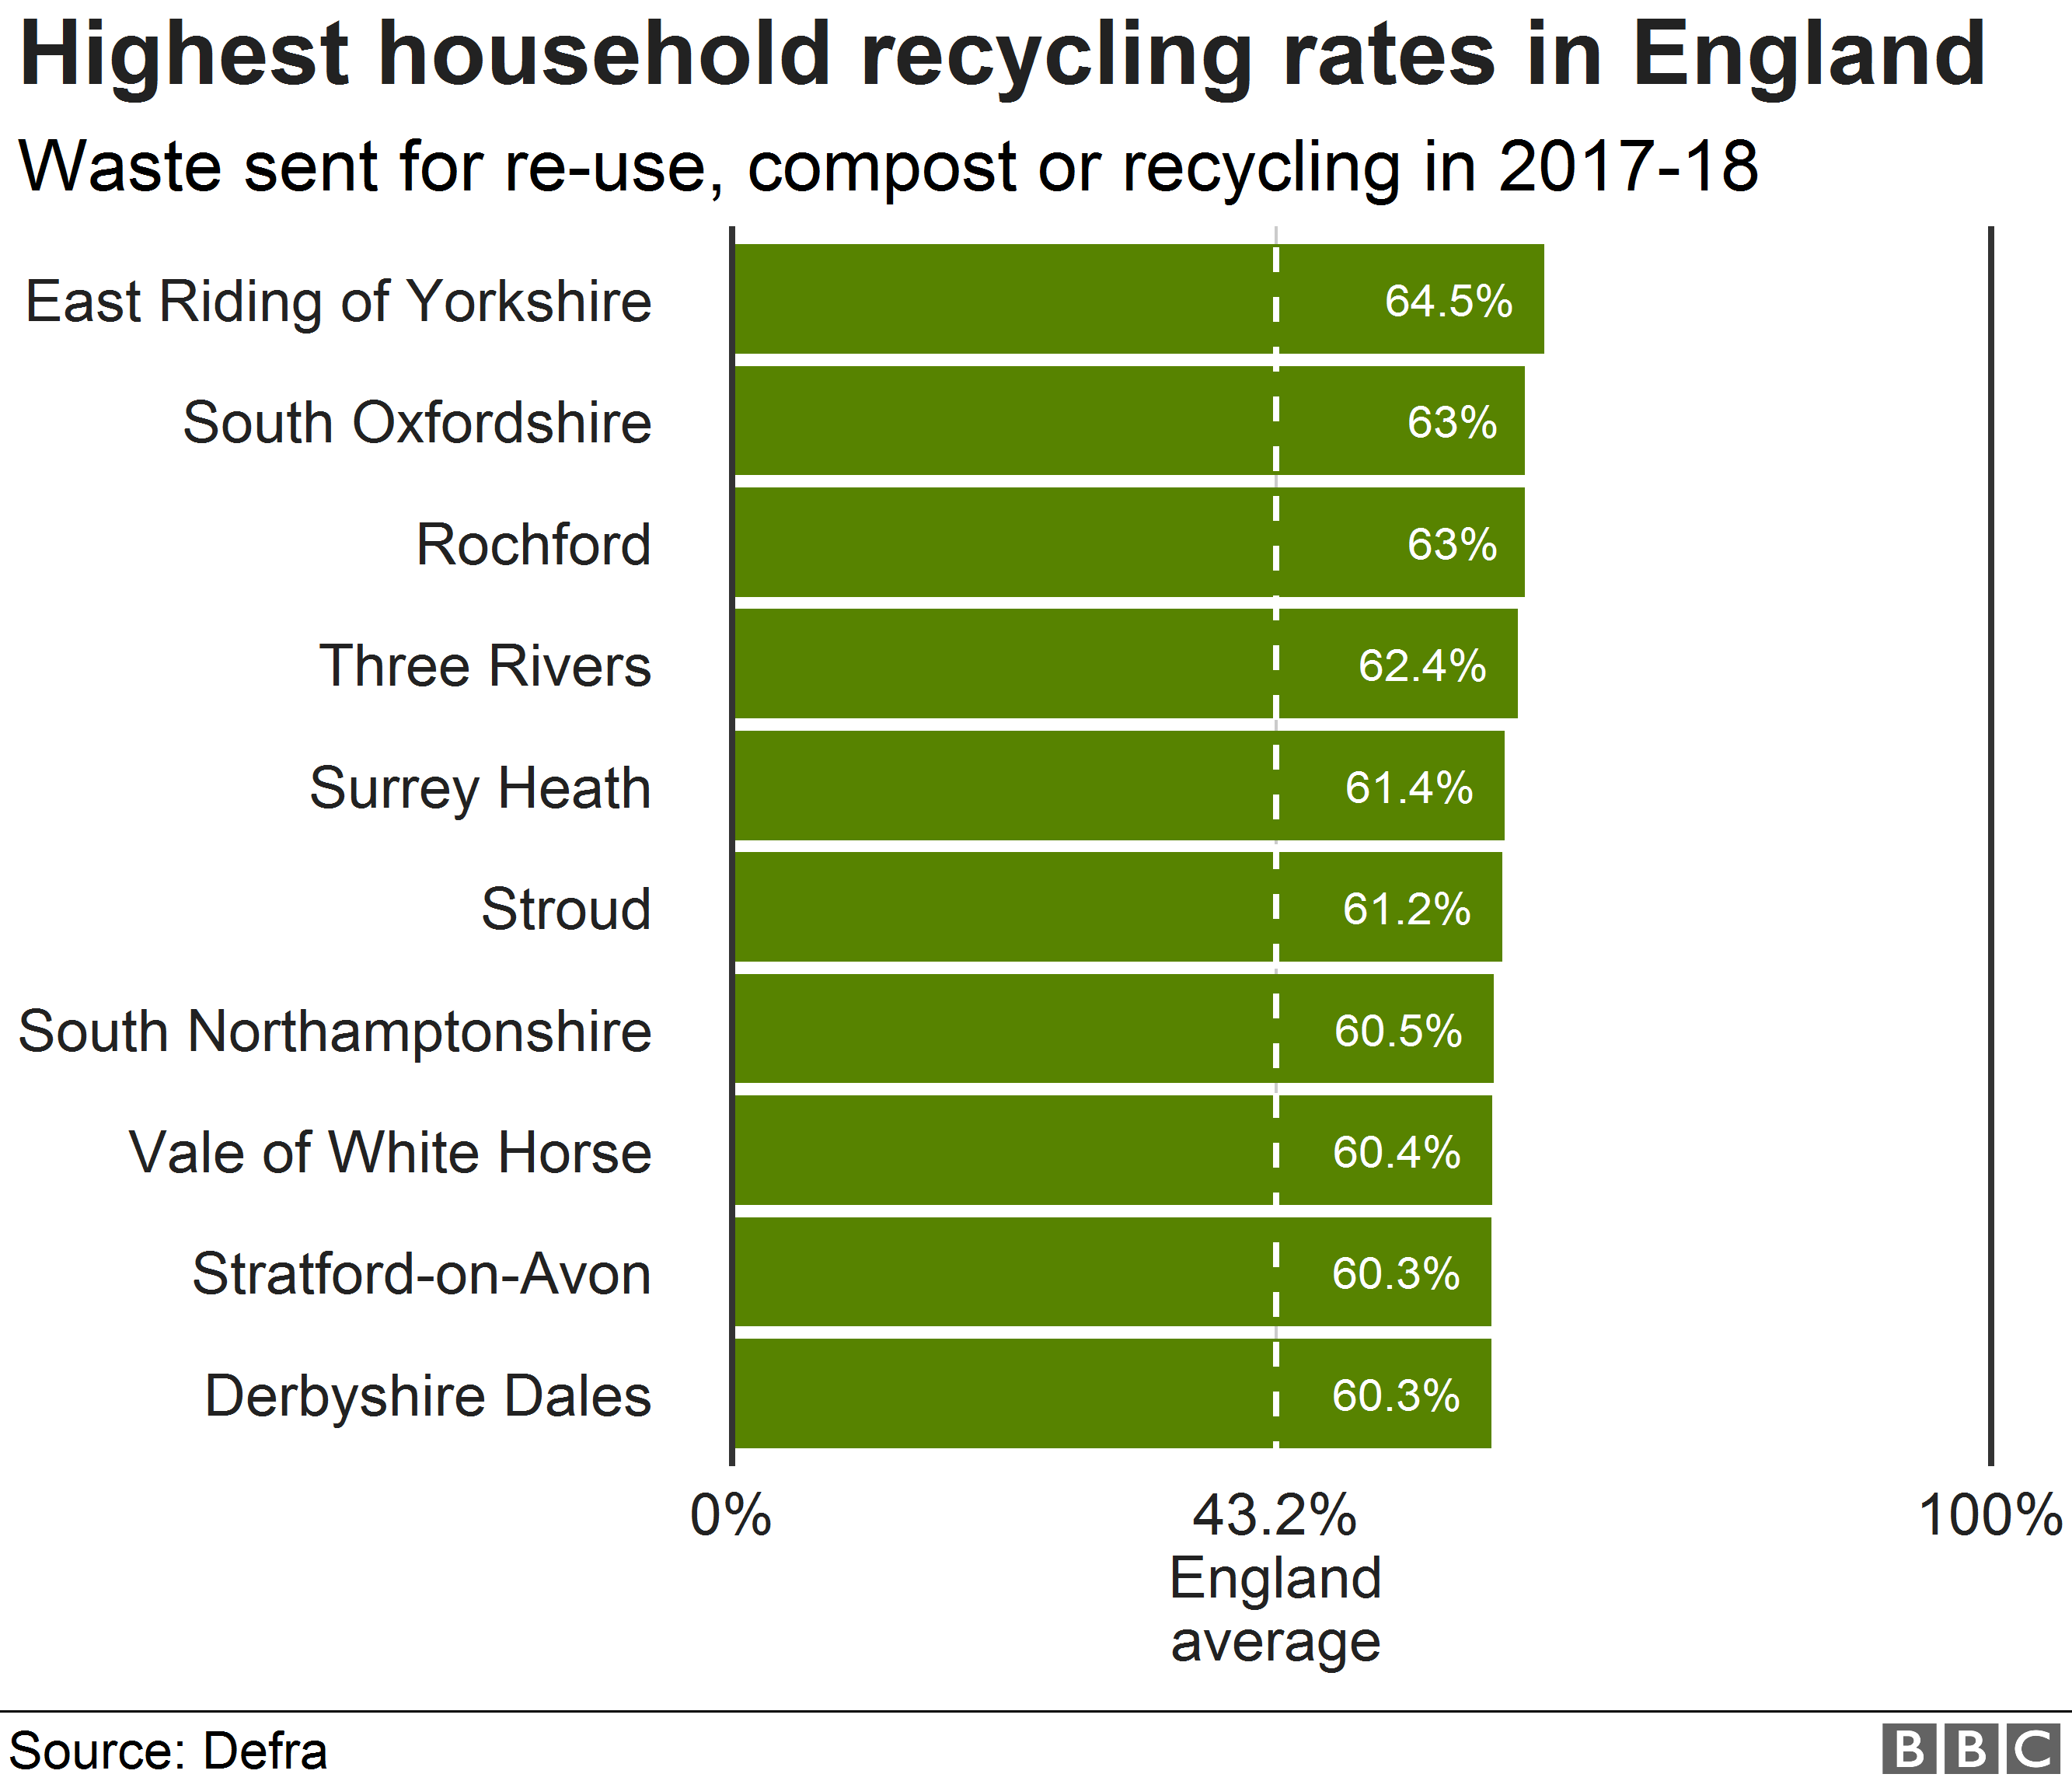 Highest household recycling rates in England